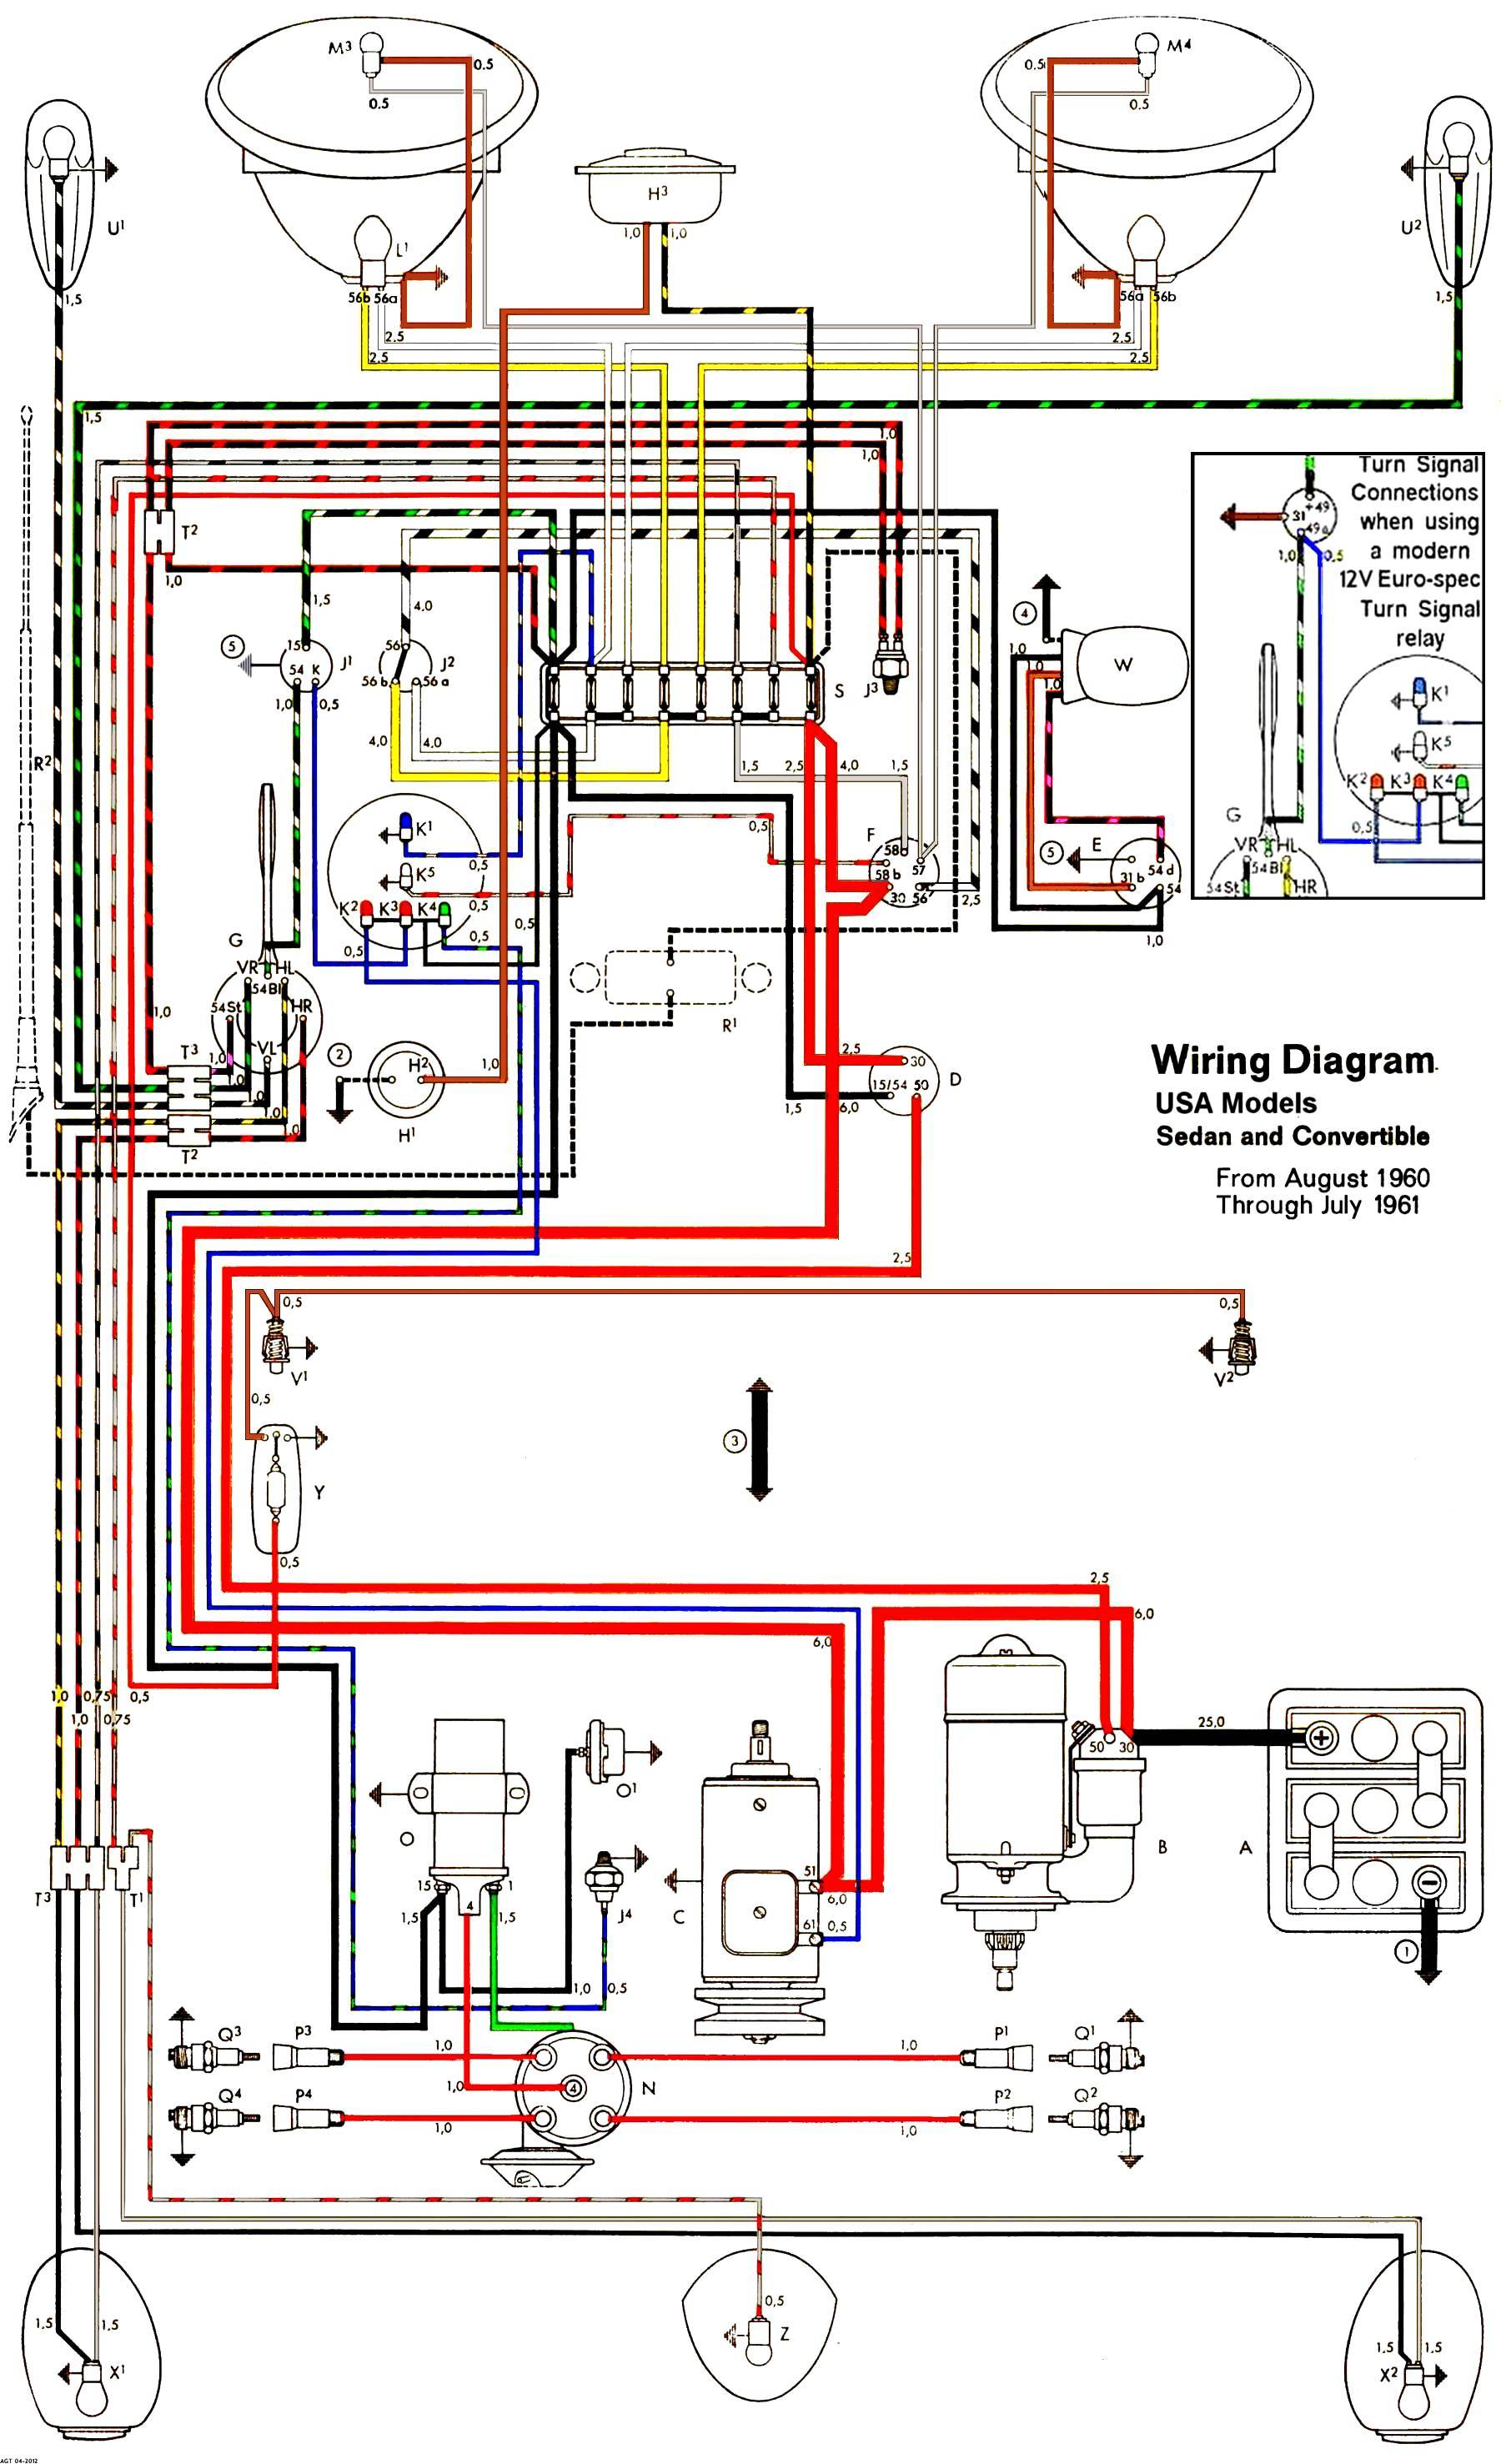 thesamba com type 1 wiring diagrams rh thesamba com 1973 VW Bus Vacuum  Diagram 6.1 VW Wire Diagram